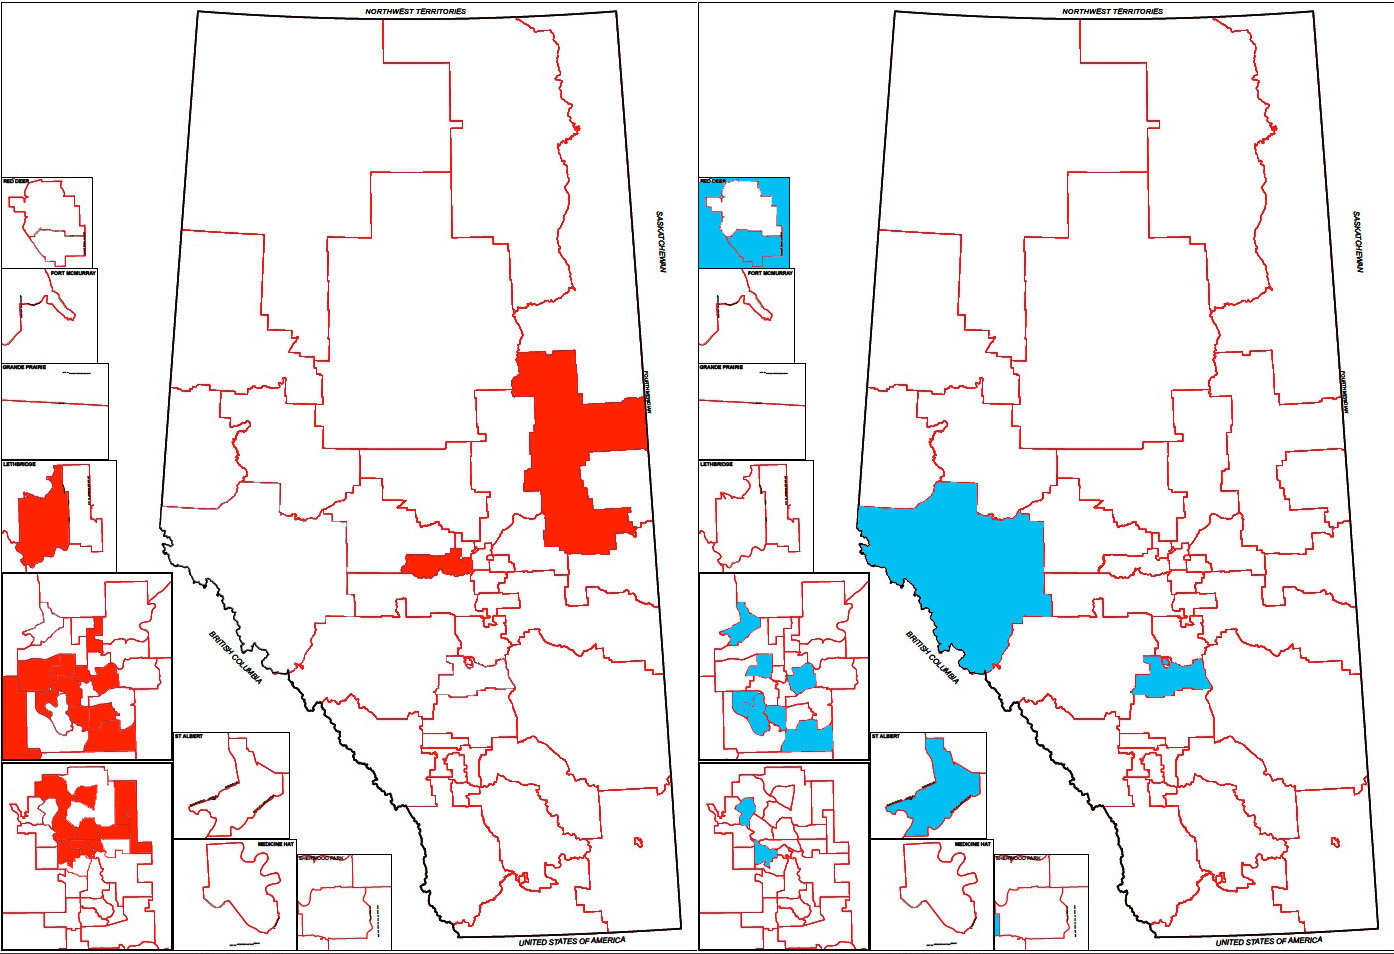 Map of constituencies with nominated Liberal and Alberta Party candidates (January 17, 2012)